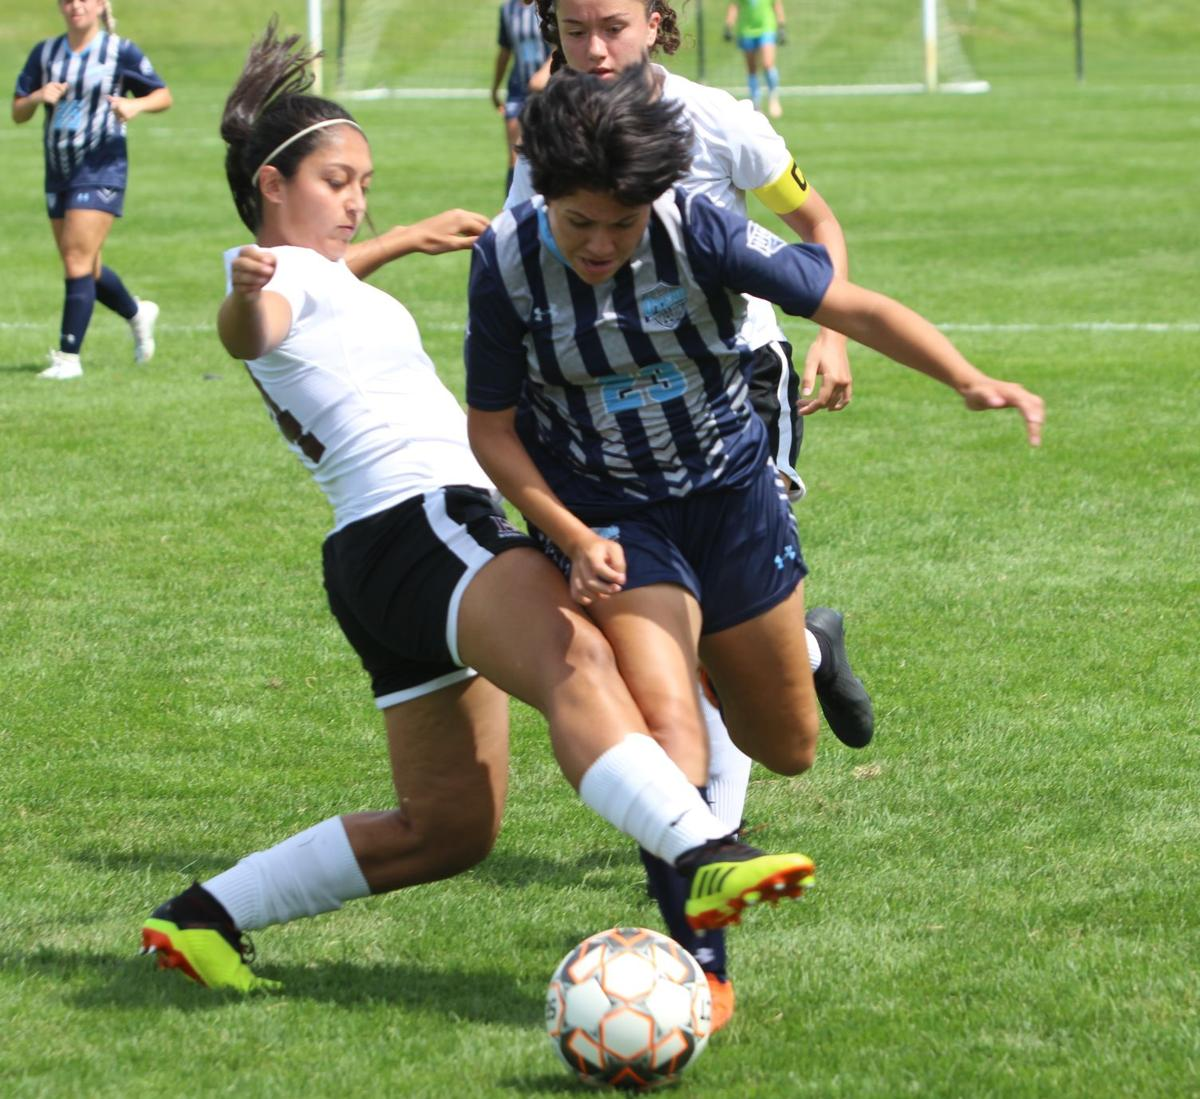 IHCC trips up Otero in women's soccer action